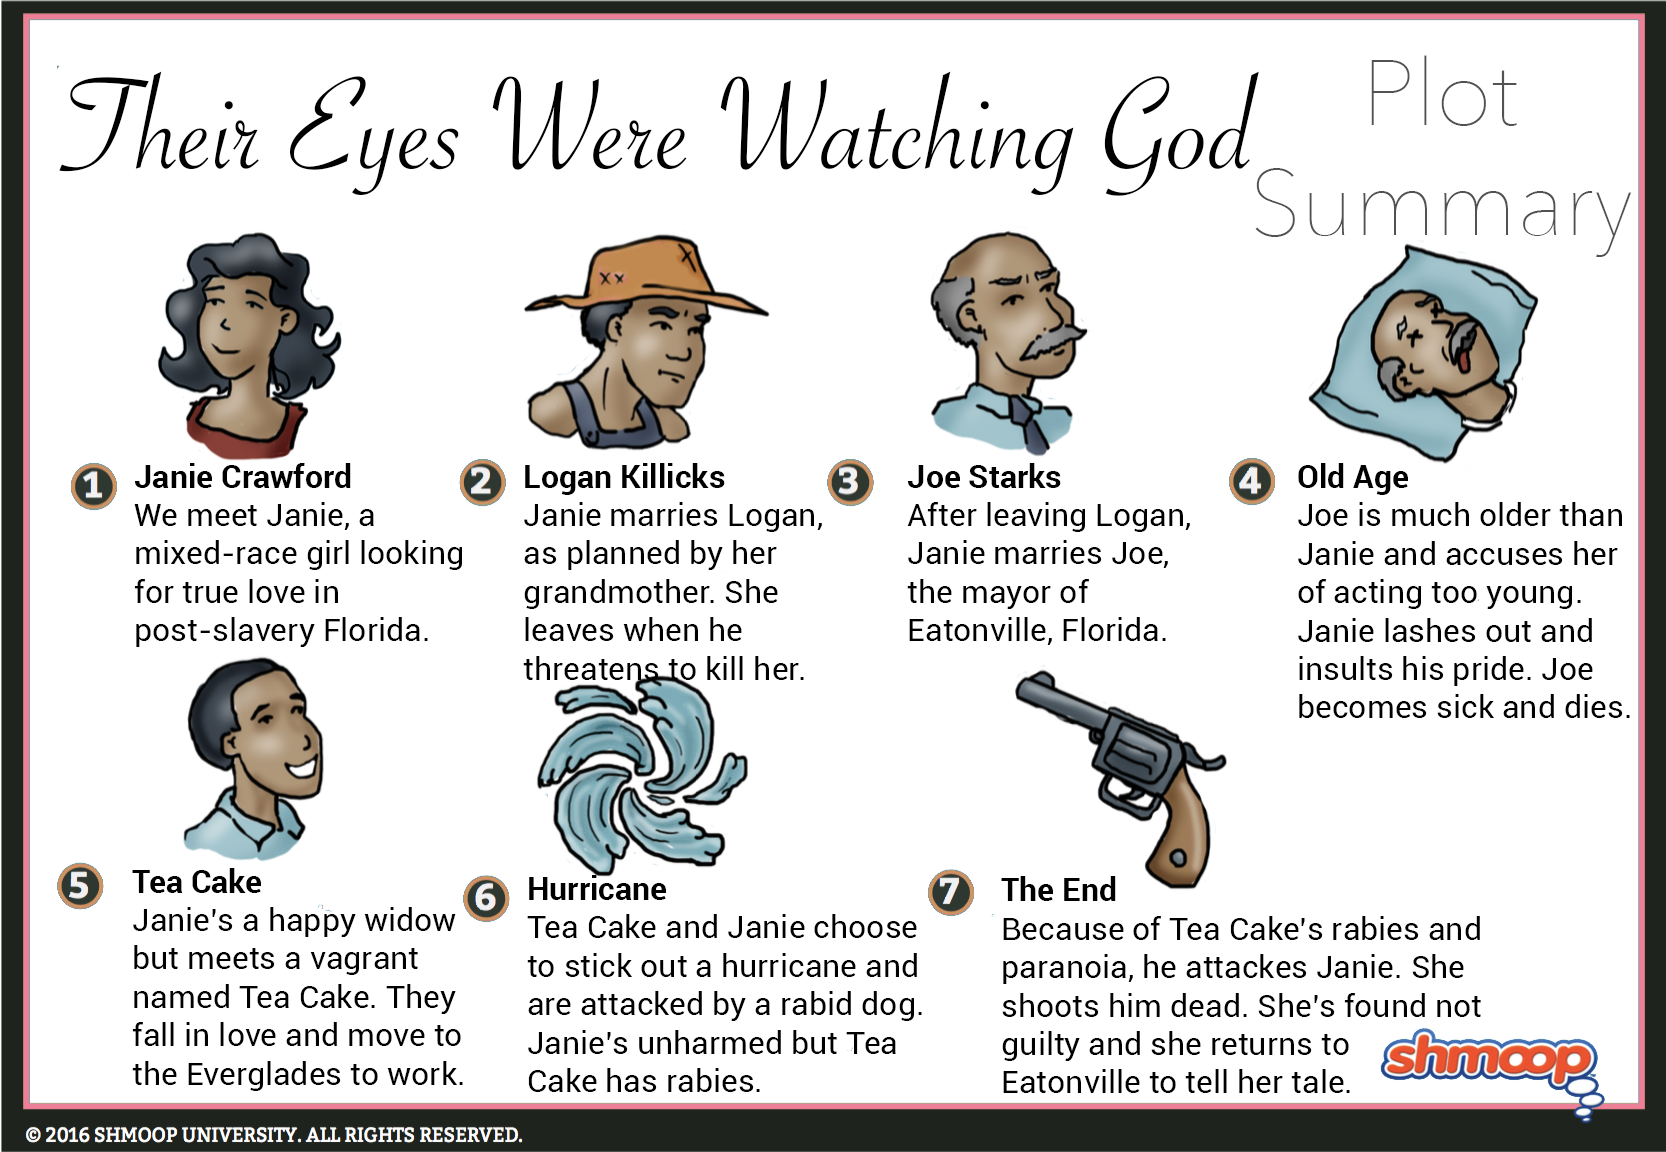 plot summary in their eyes were watching god chart plot summary